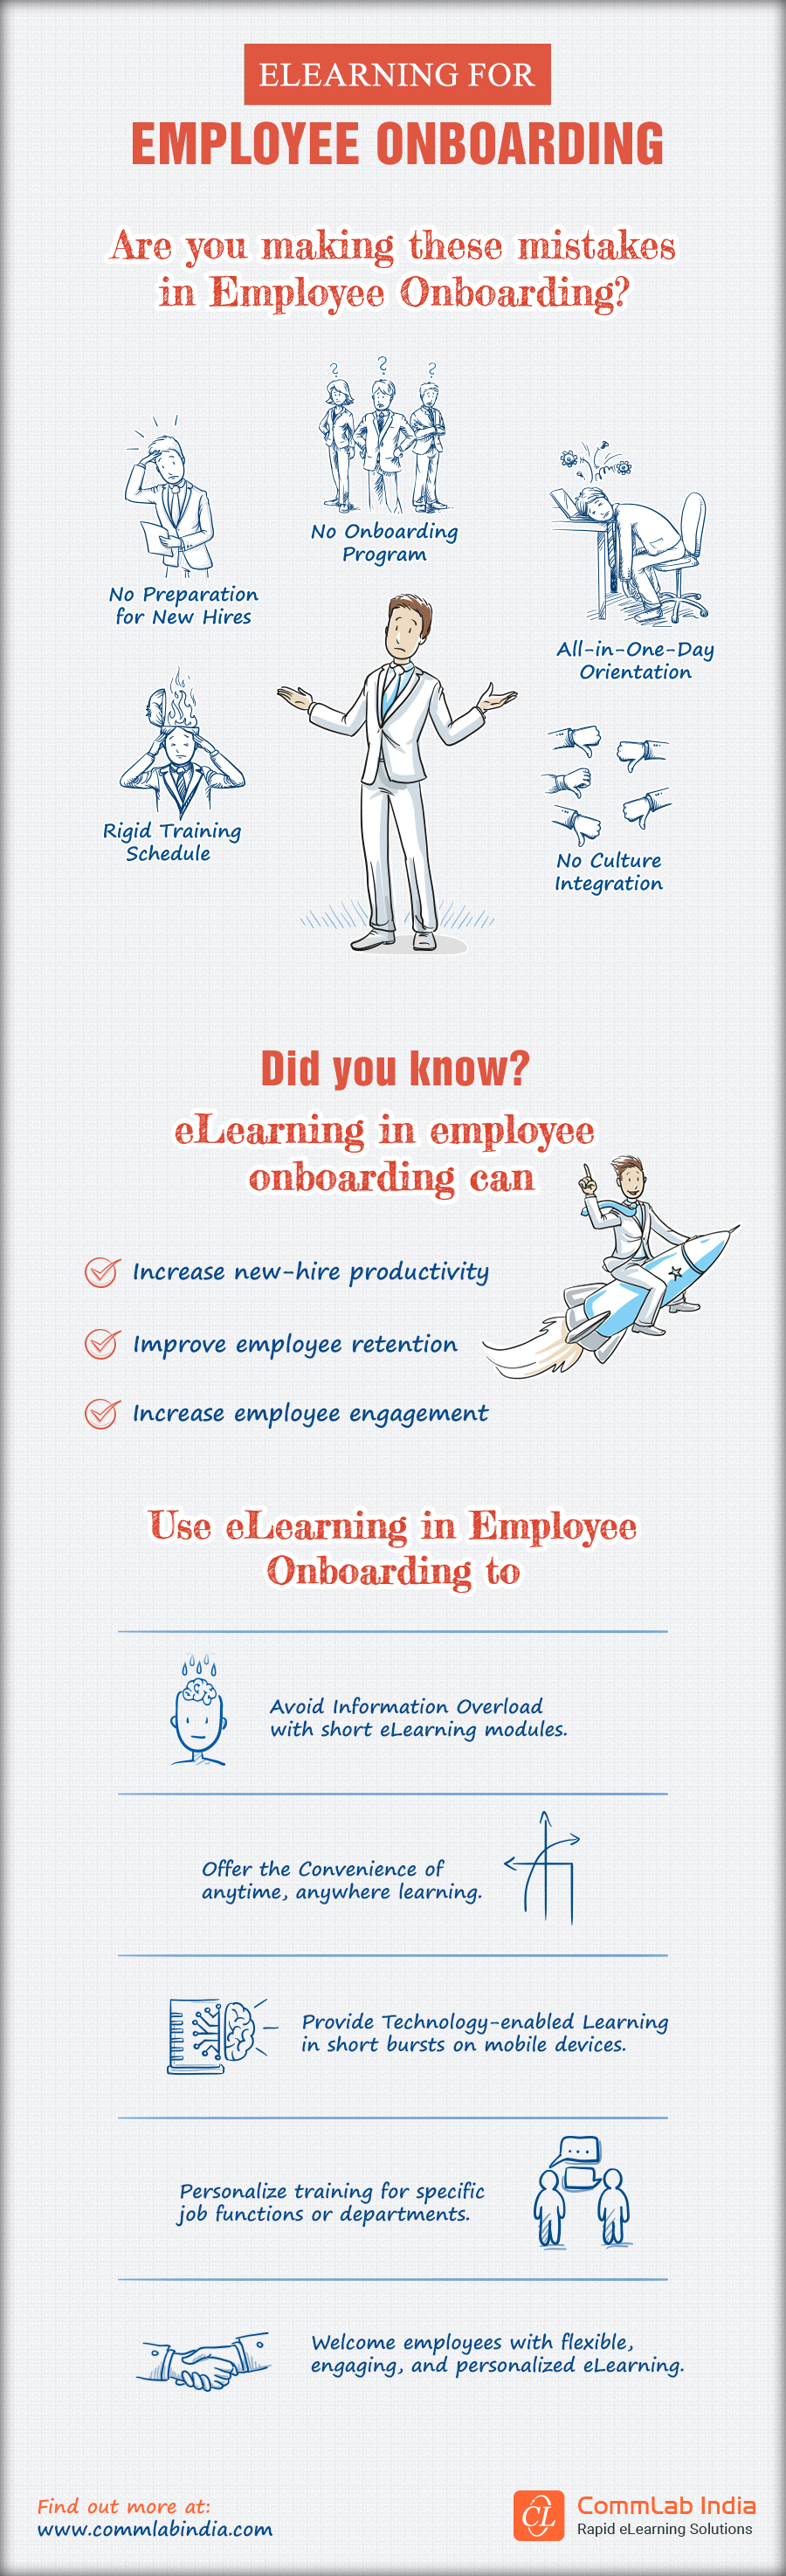 Why eLearning for Employee Onboarding? [Infographic]